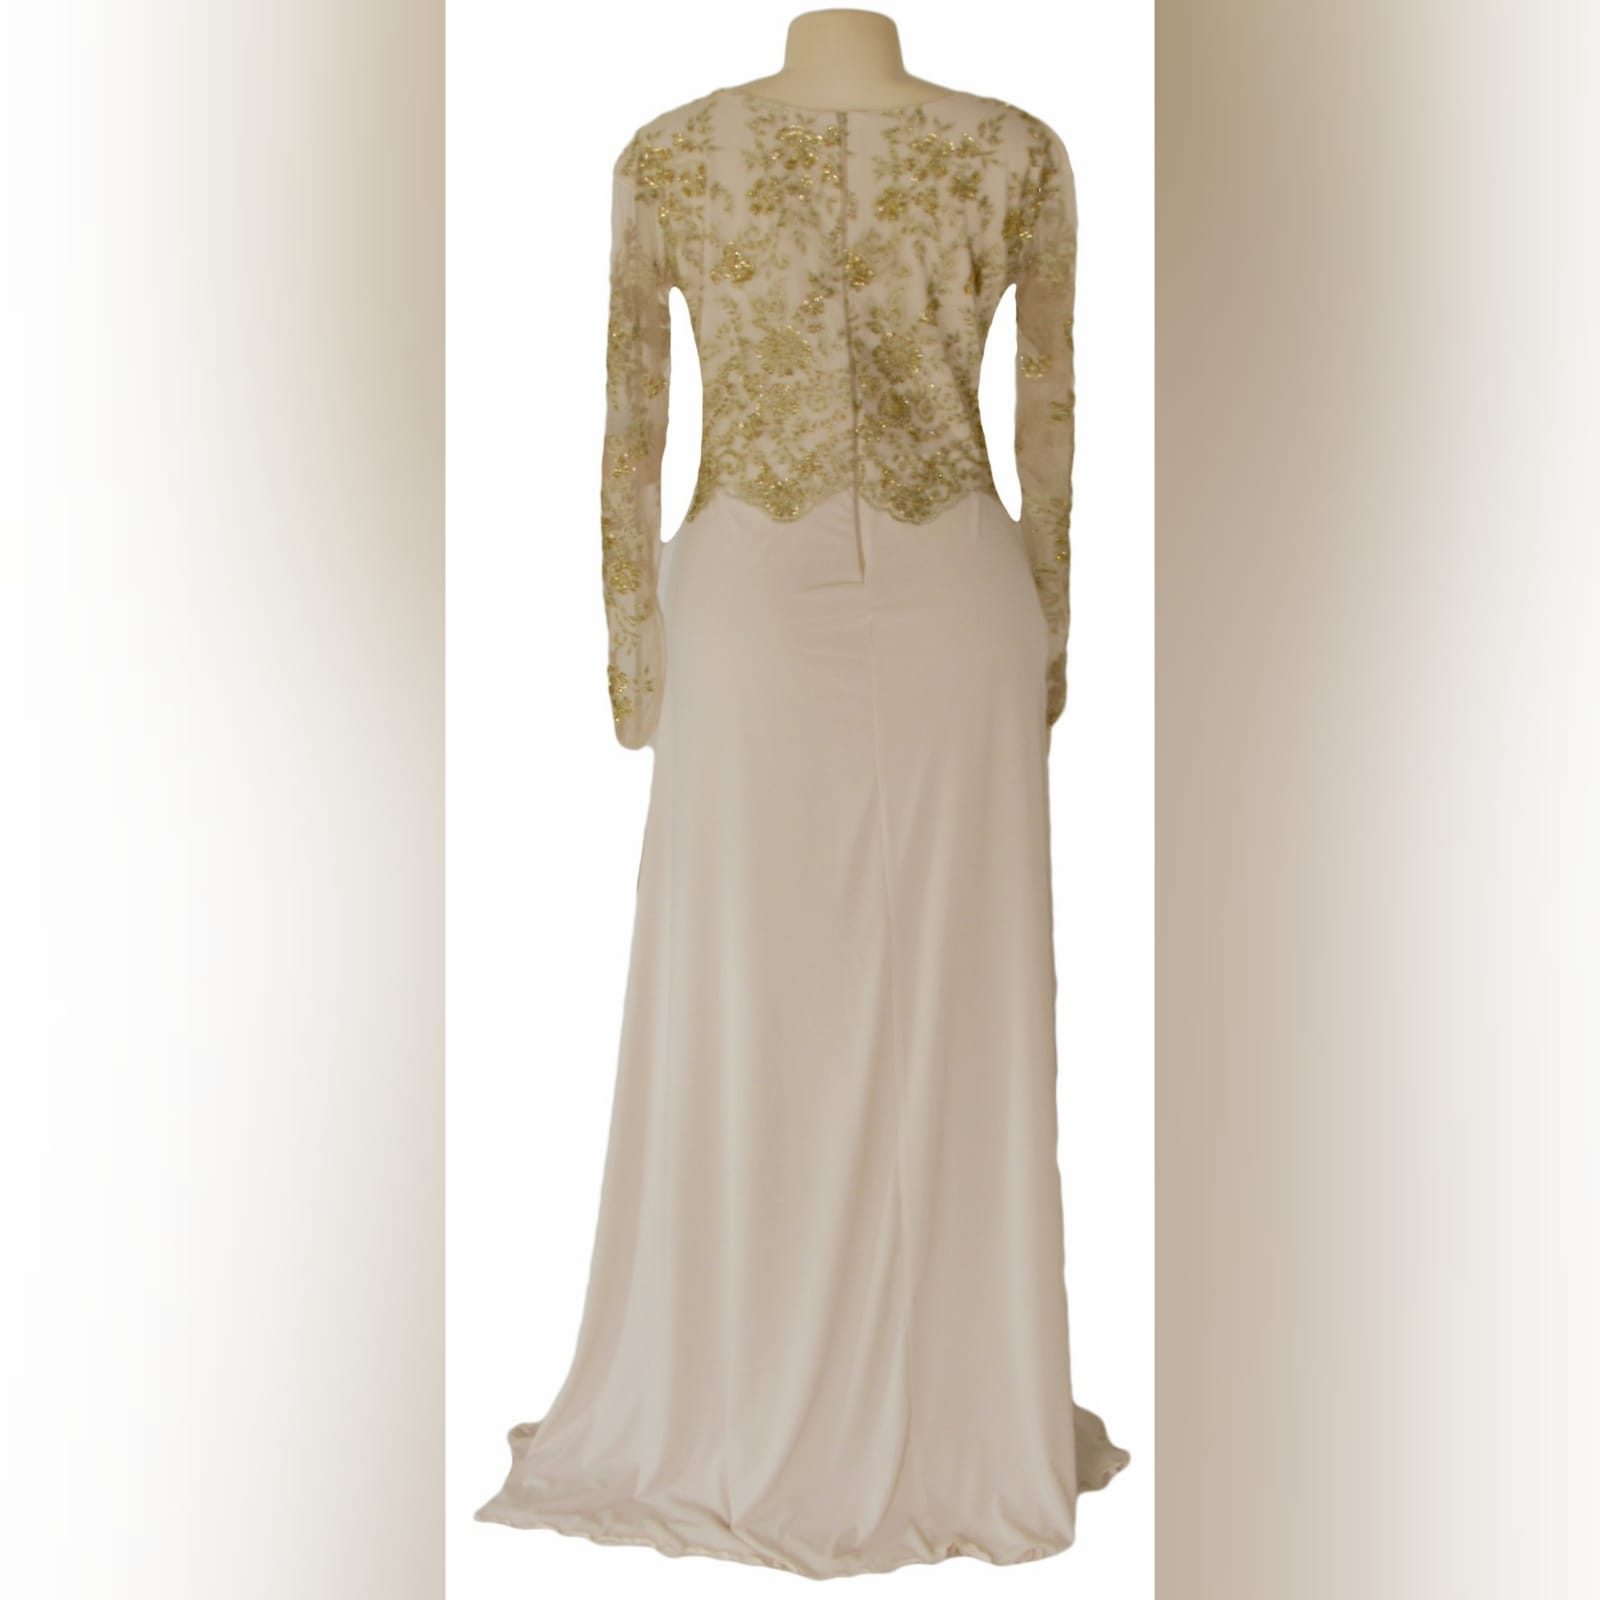 Nude and gold long evening dress 5 nude and gold long evening dress. Bodice detailed with gold beaded lace with long she sleeves, with a slit